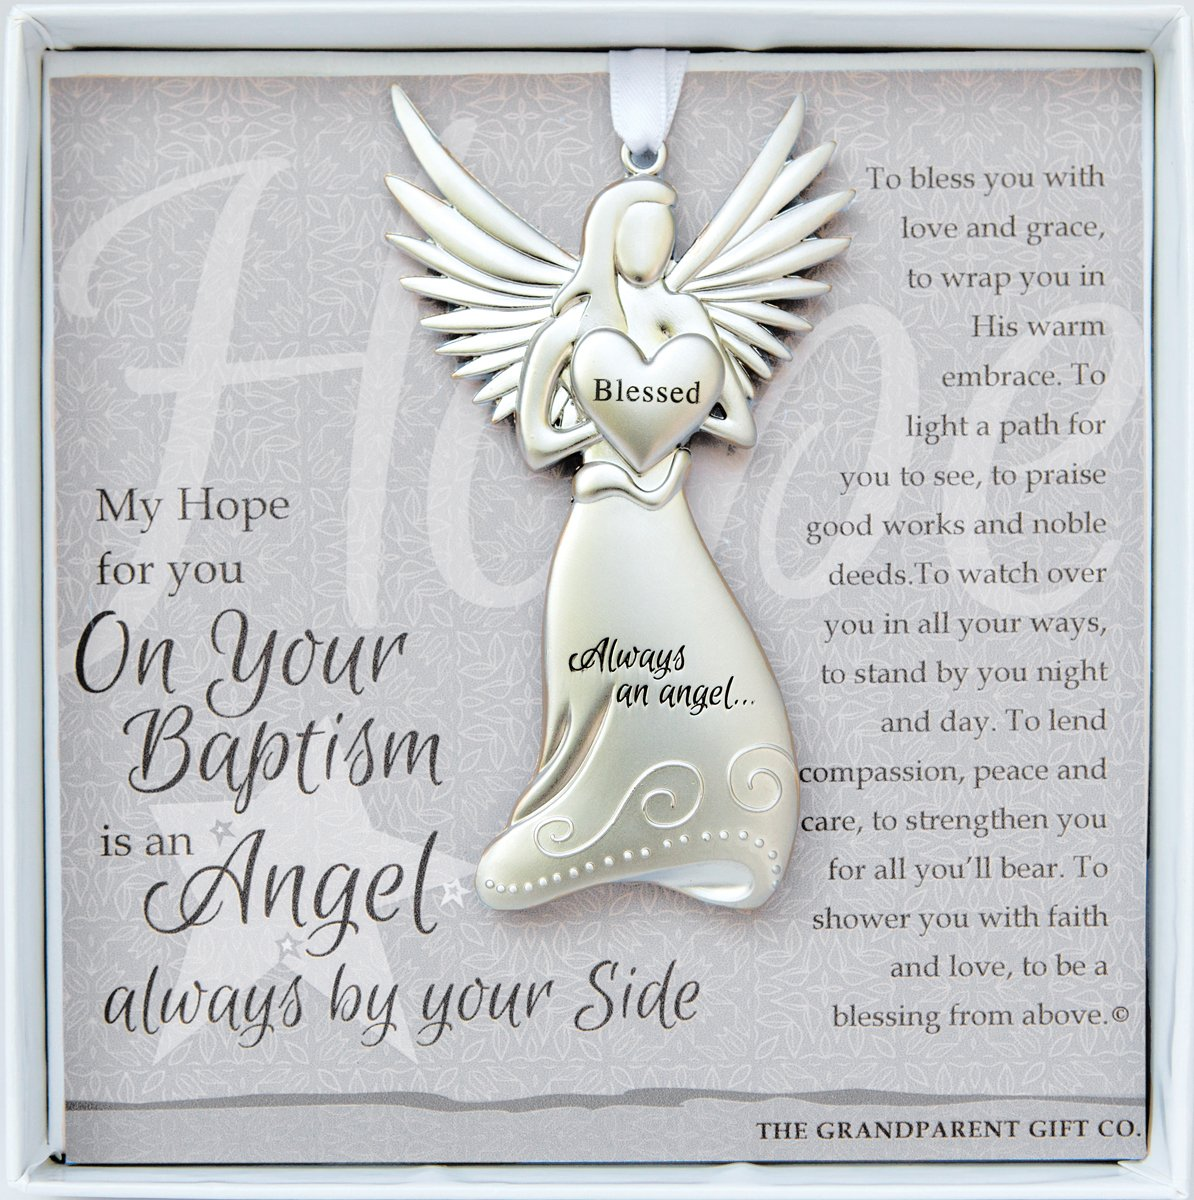 The Grandparent Gift Baptism Keepsake Angel, Gray, Silver, 1 Pack ca baby GRDE3 4522-2